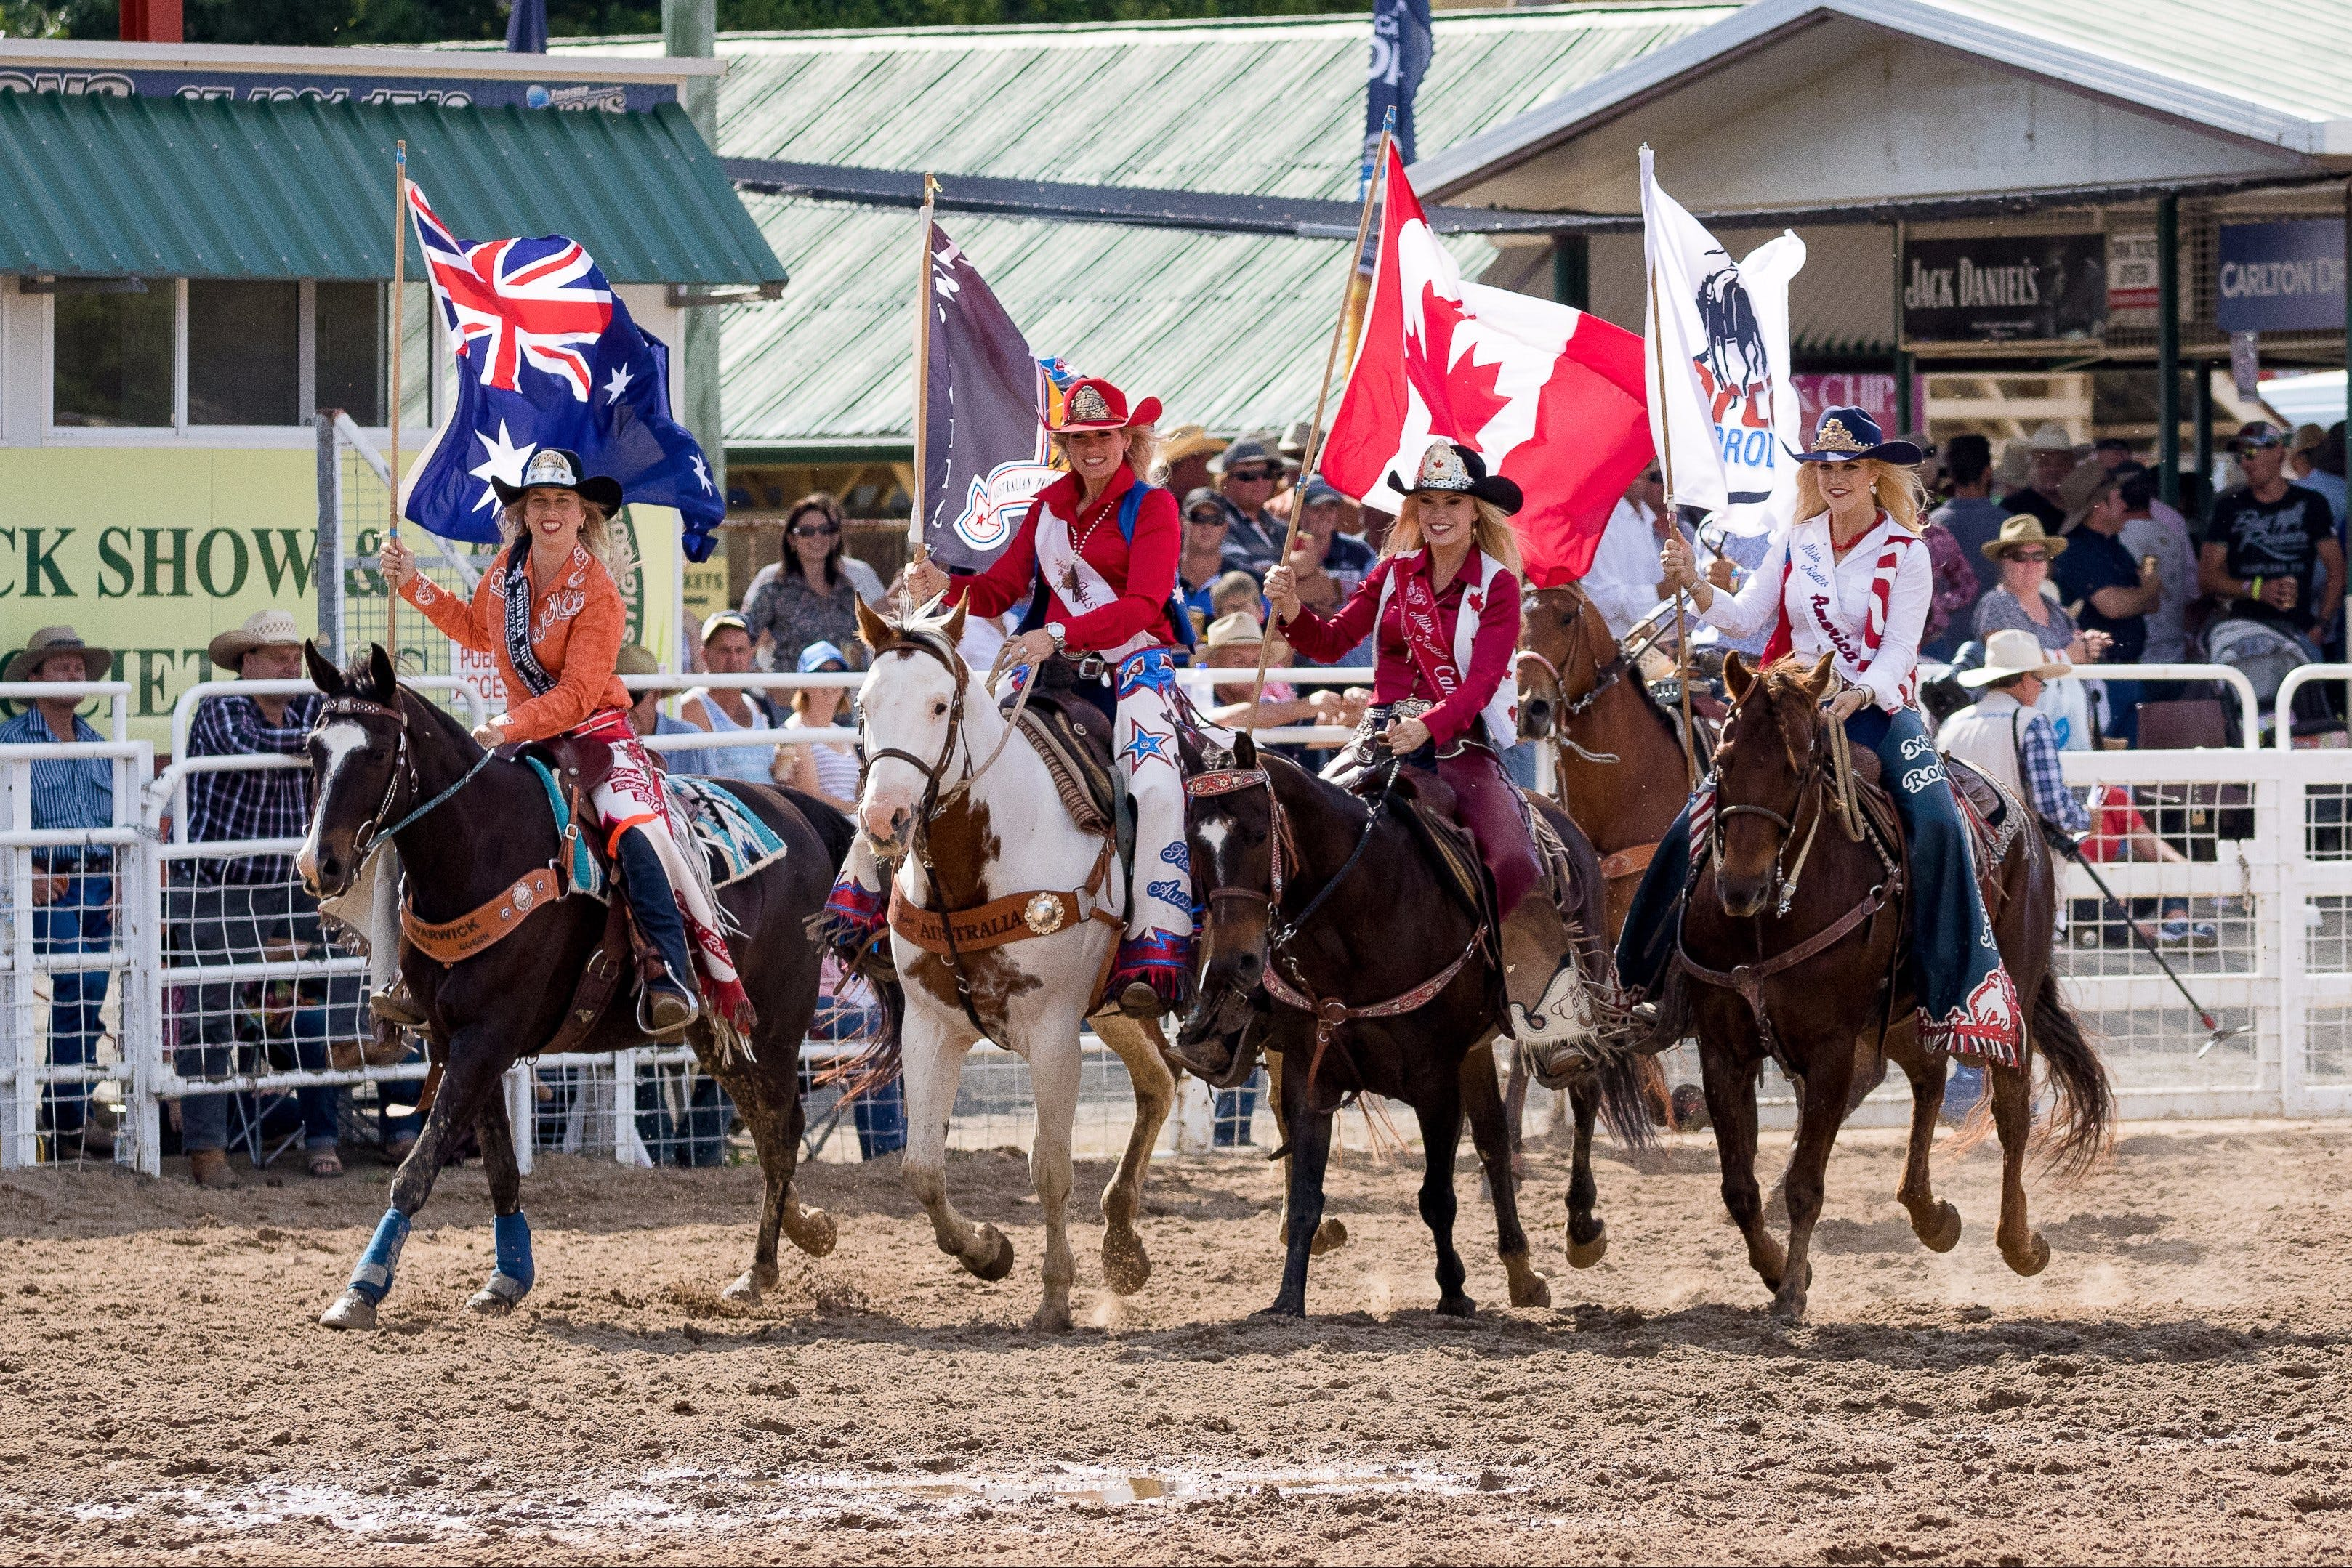 Warwick Rodeo National APRA National Finals and Warwick Gold Cup Campdraft - Tourism Adelaide